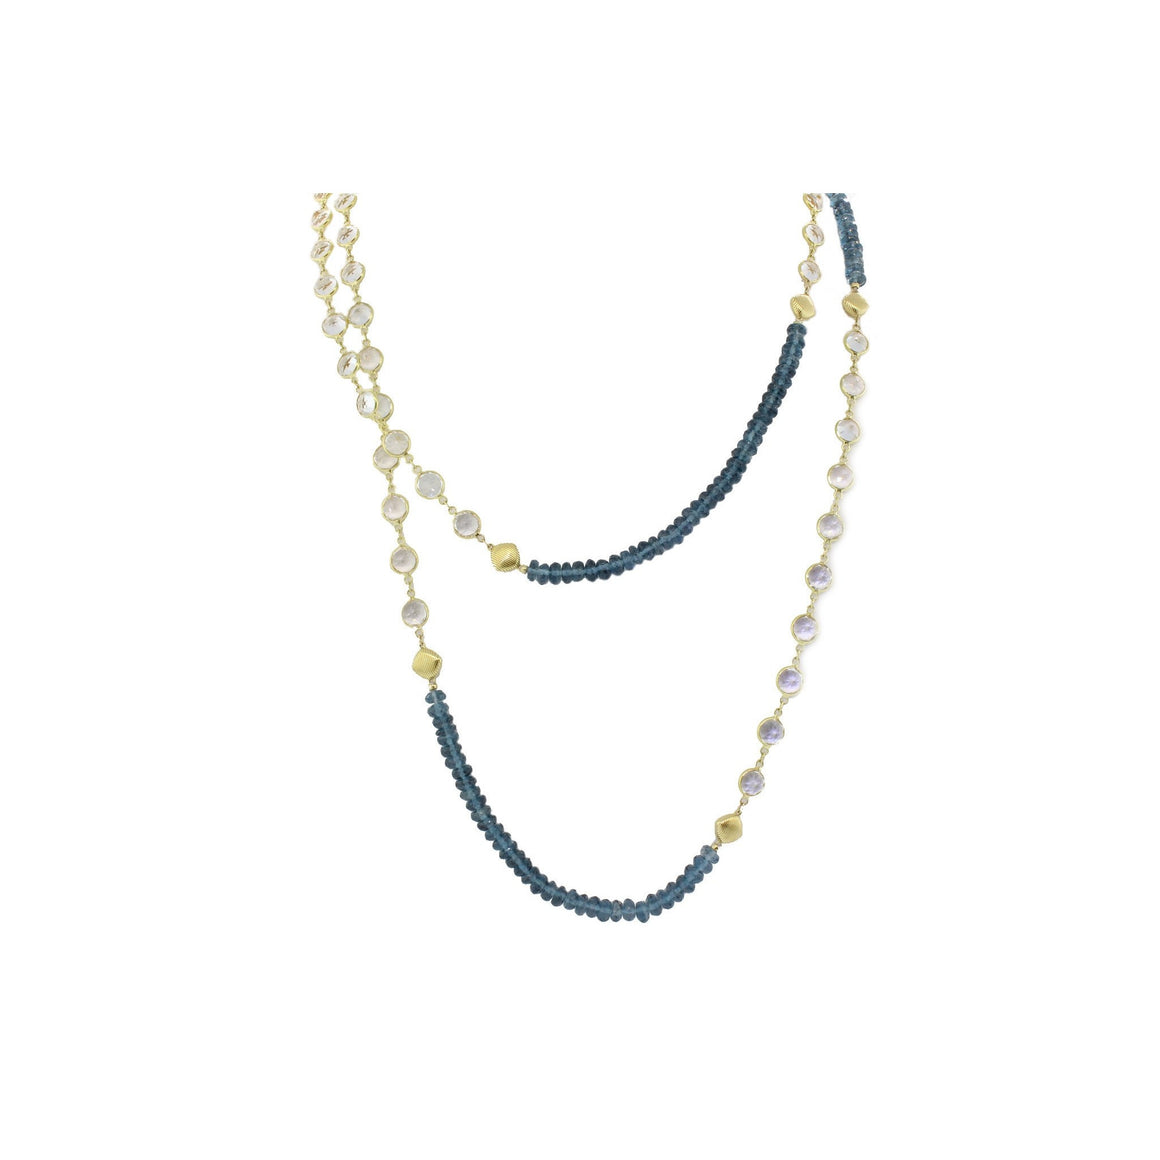 London Blue and White Topaz Necklace-Sloane Street-Duncan & Boyd Jewelers